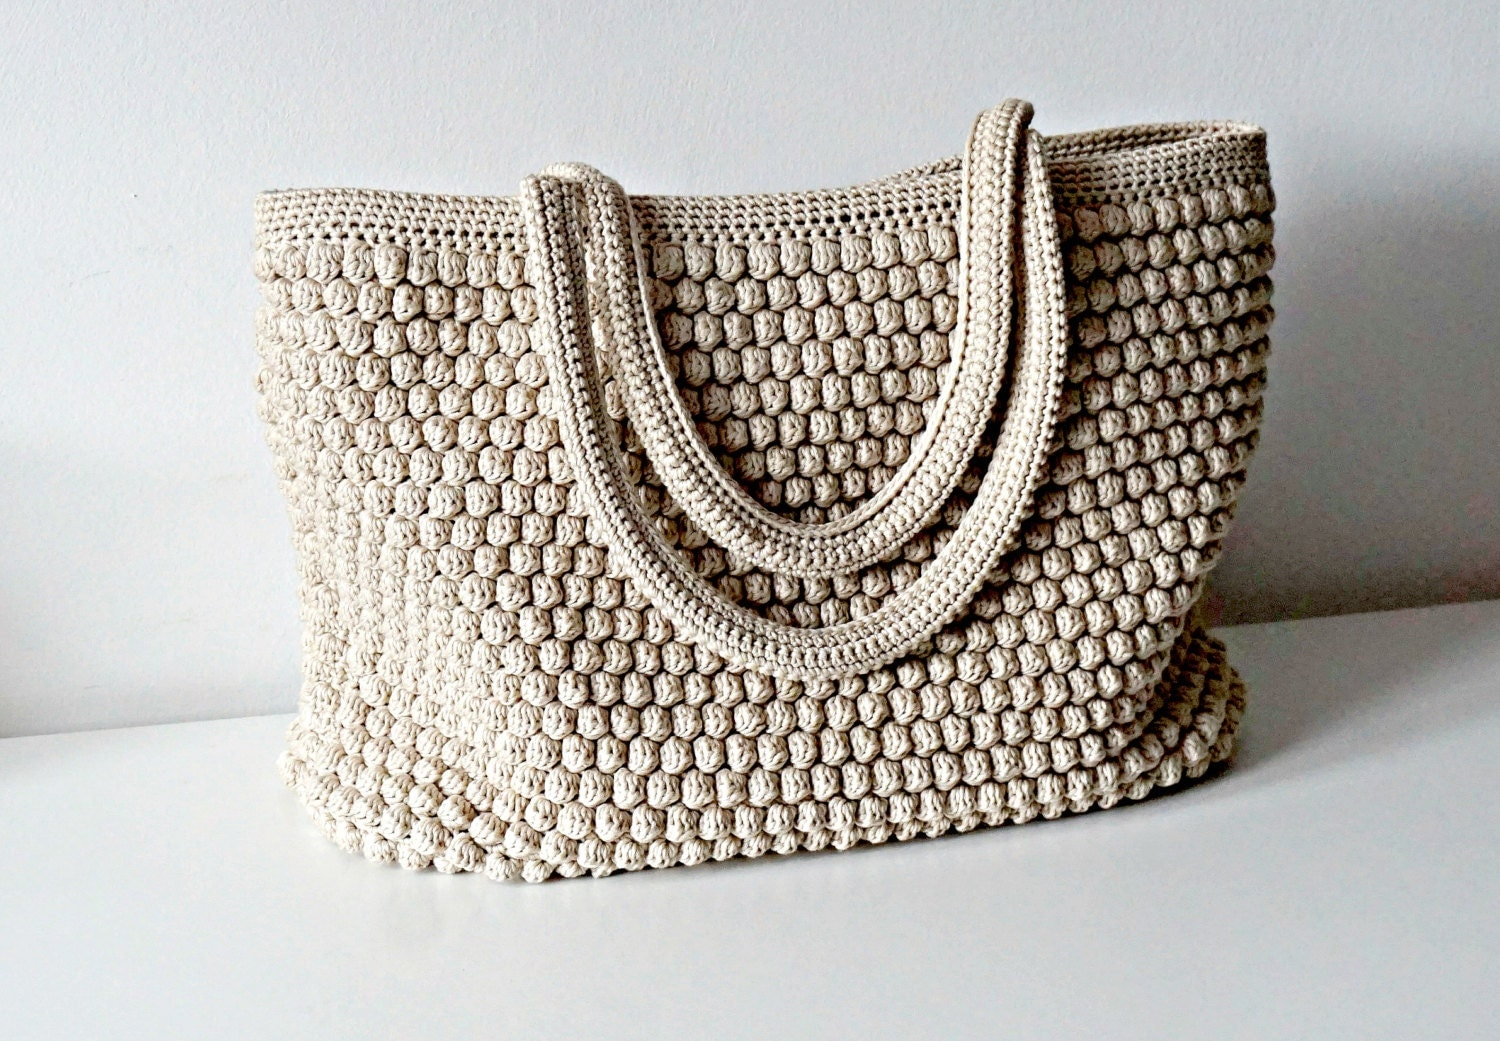 New Crochet Bags : Crochet Tote Bag in 48 colors soft crochet purse by isWoolish